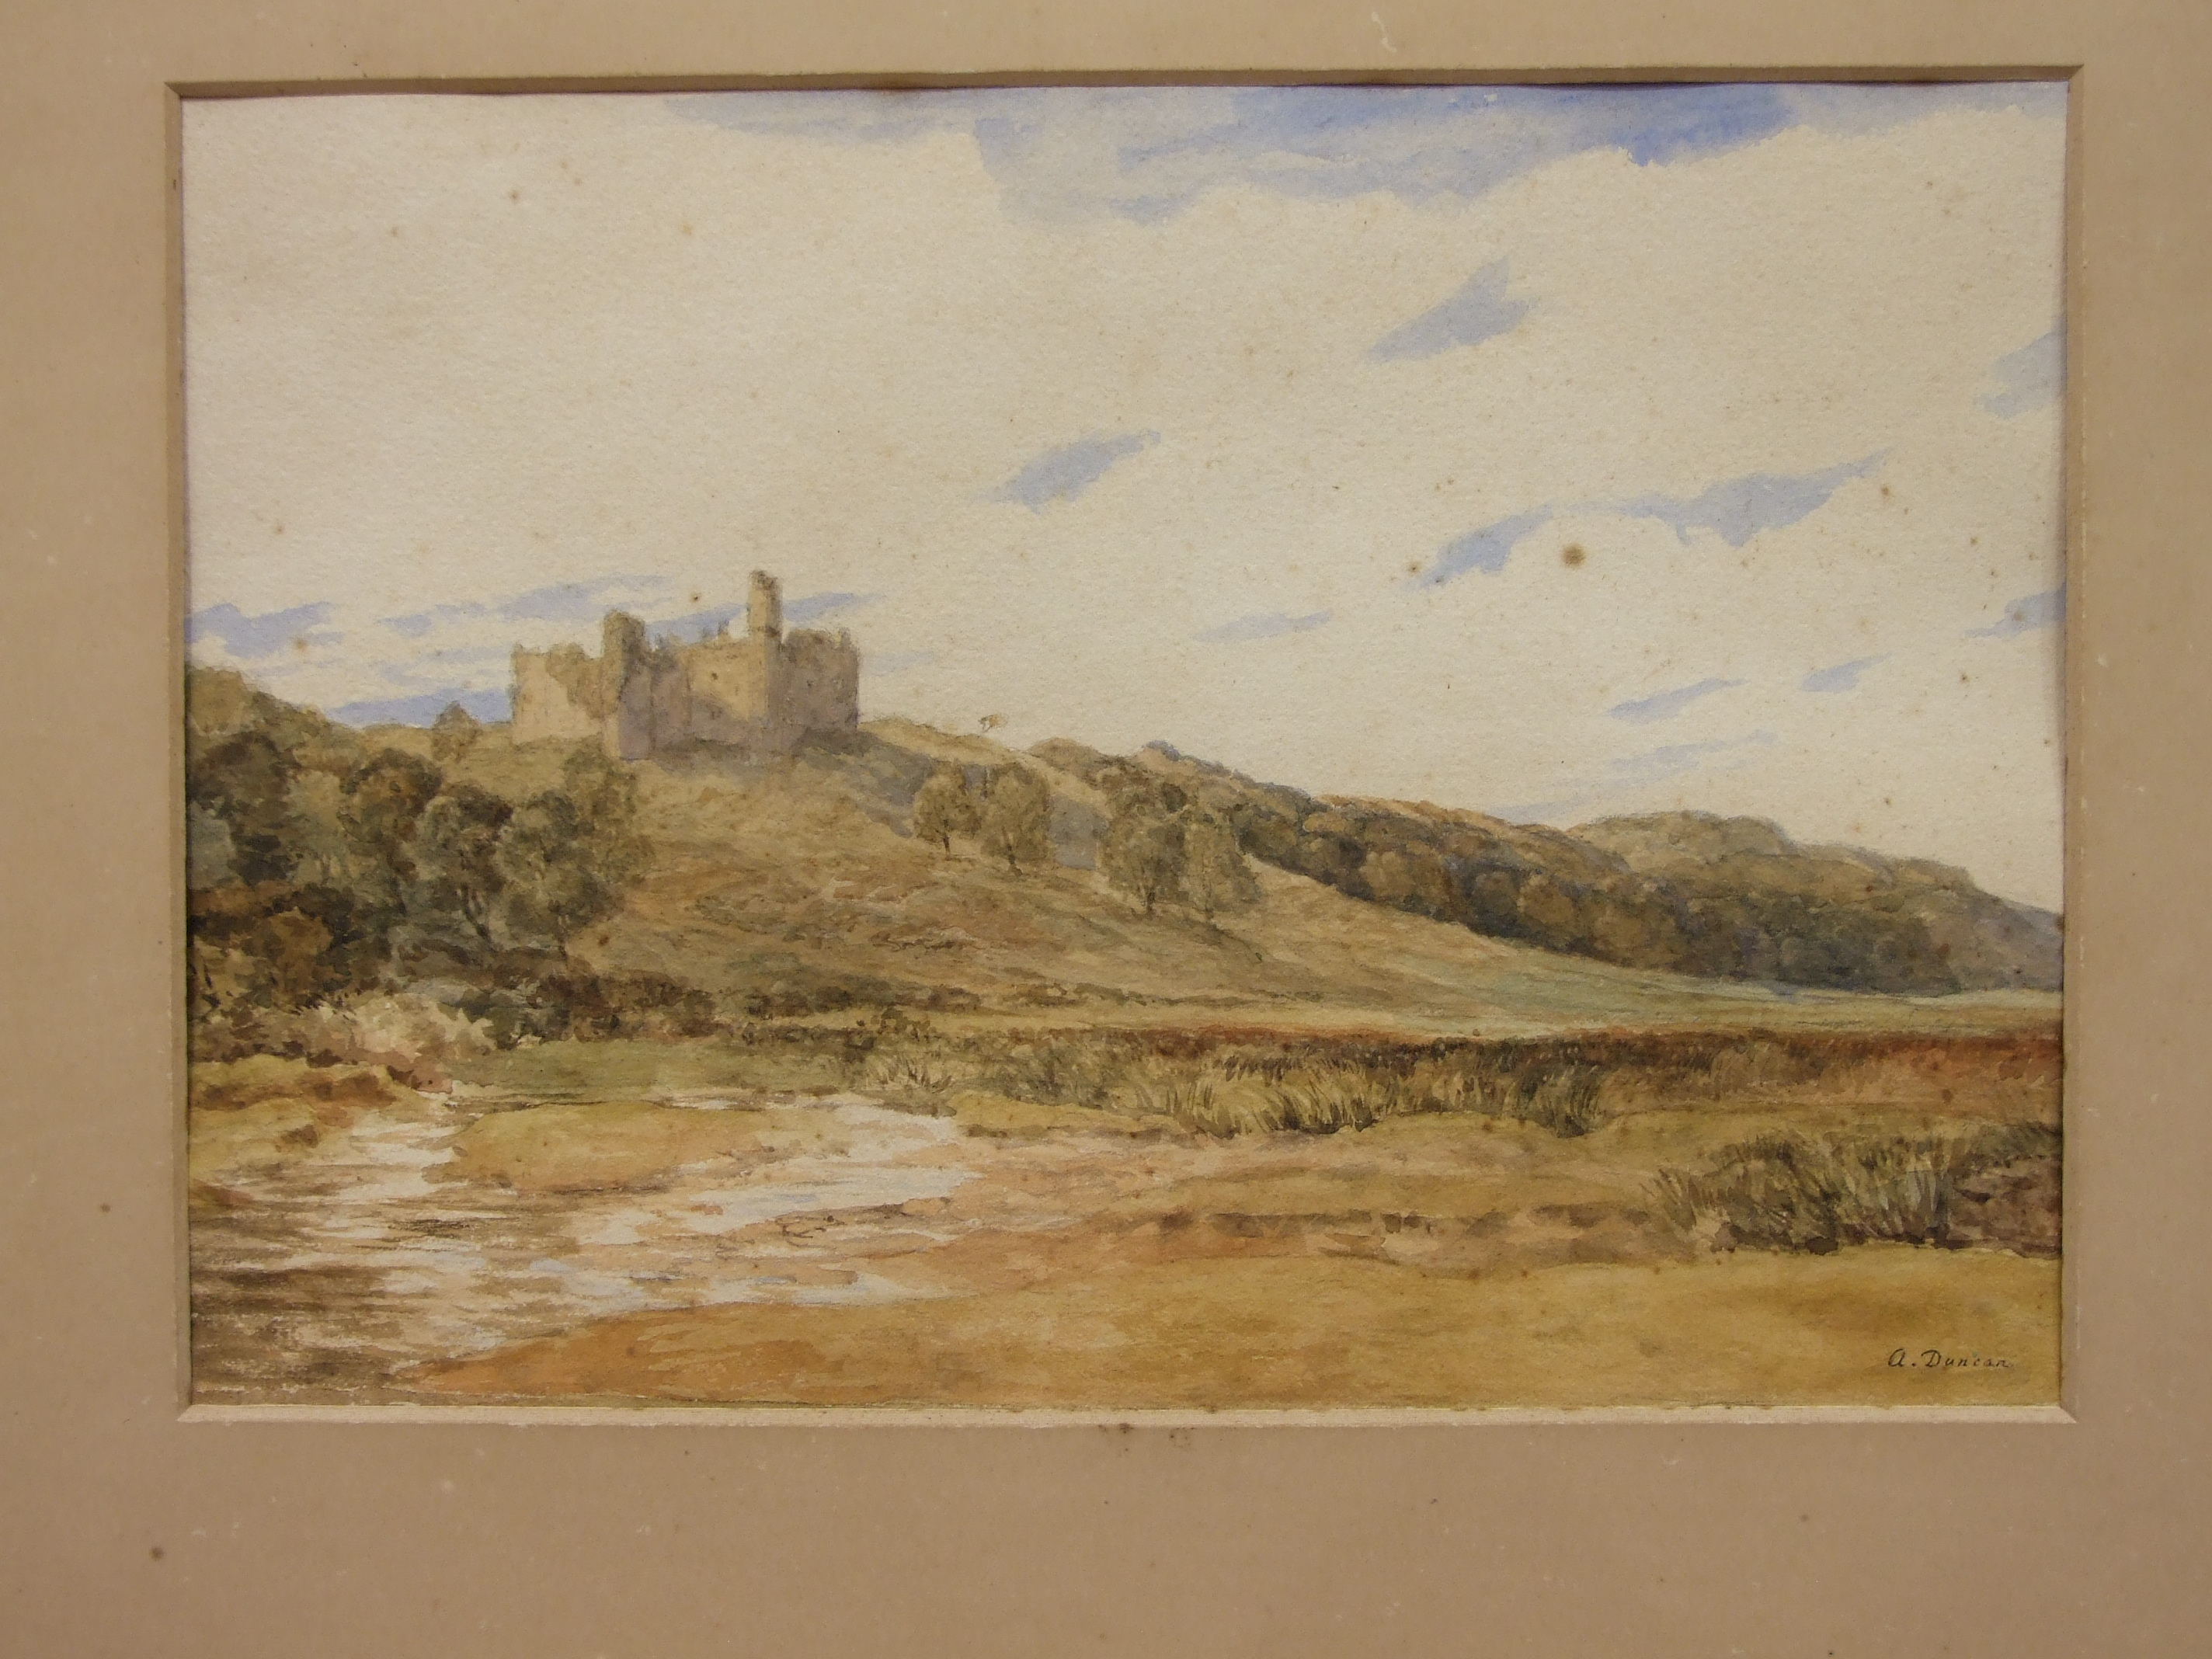 Lot 11 - Alan Duncan WEOBLEY CASTLE, COAST OF GOWER, SOUTH WALES Signed watercolour, titled on label verso,